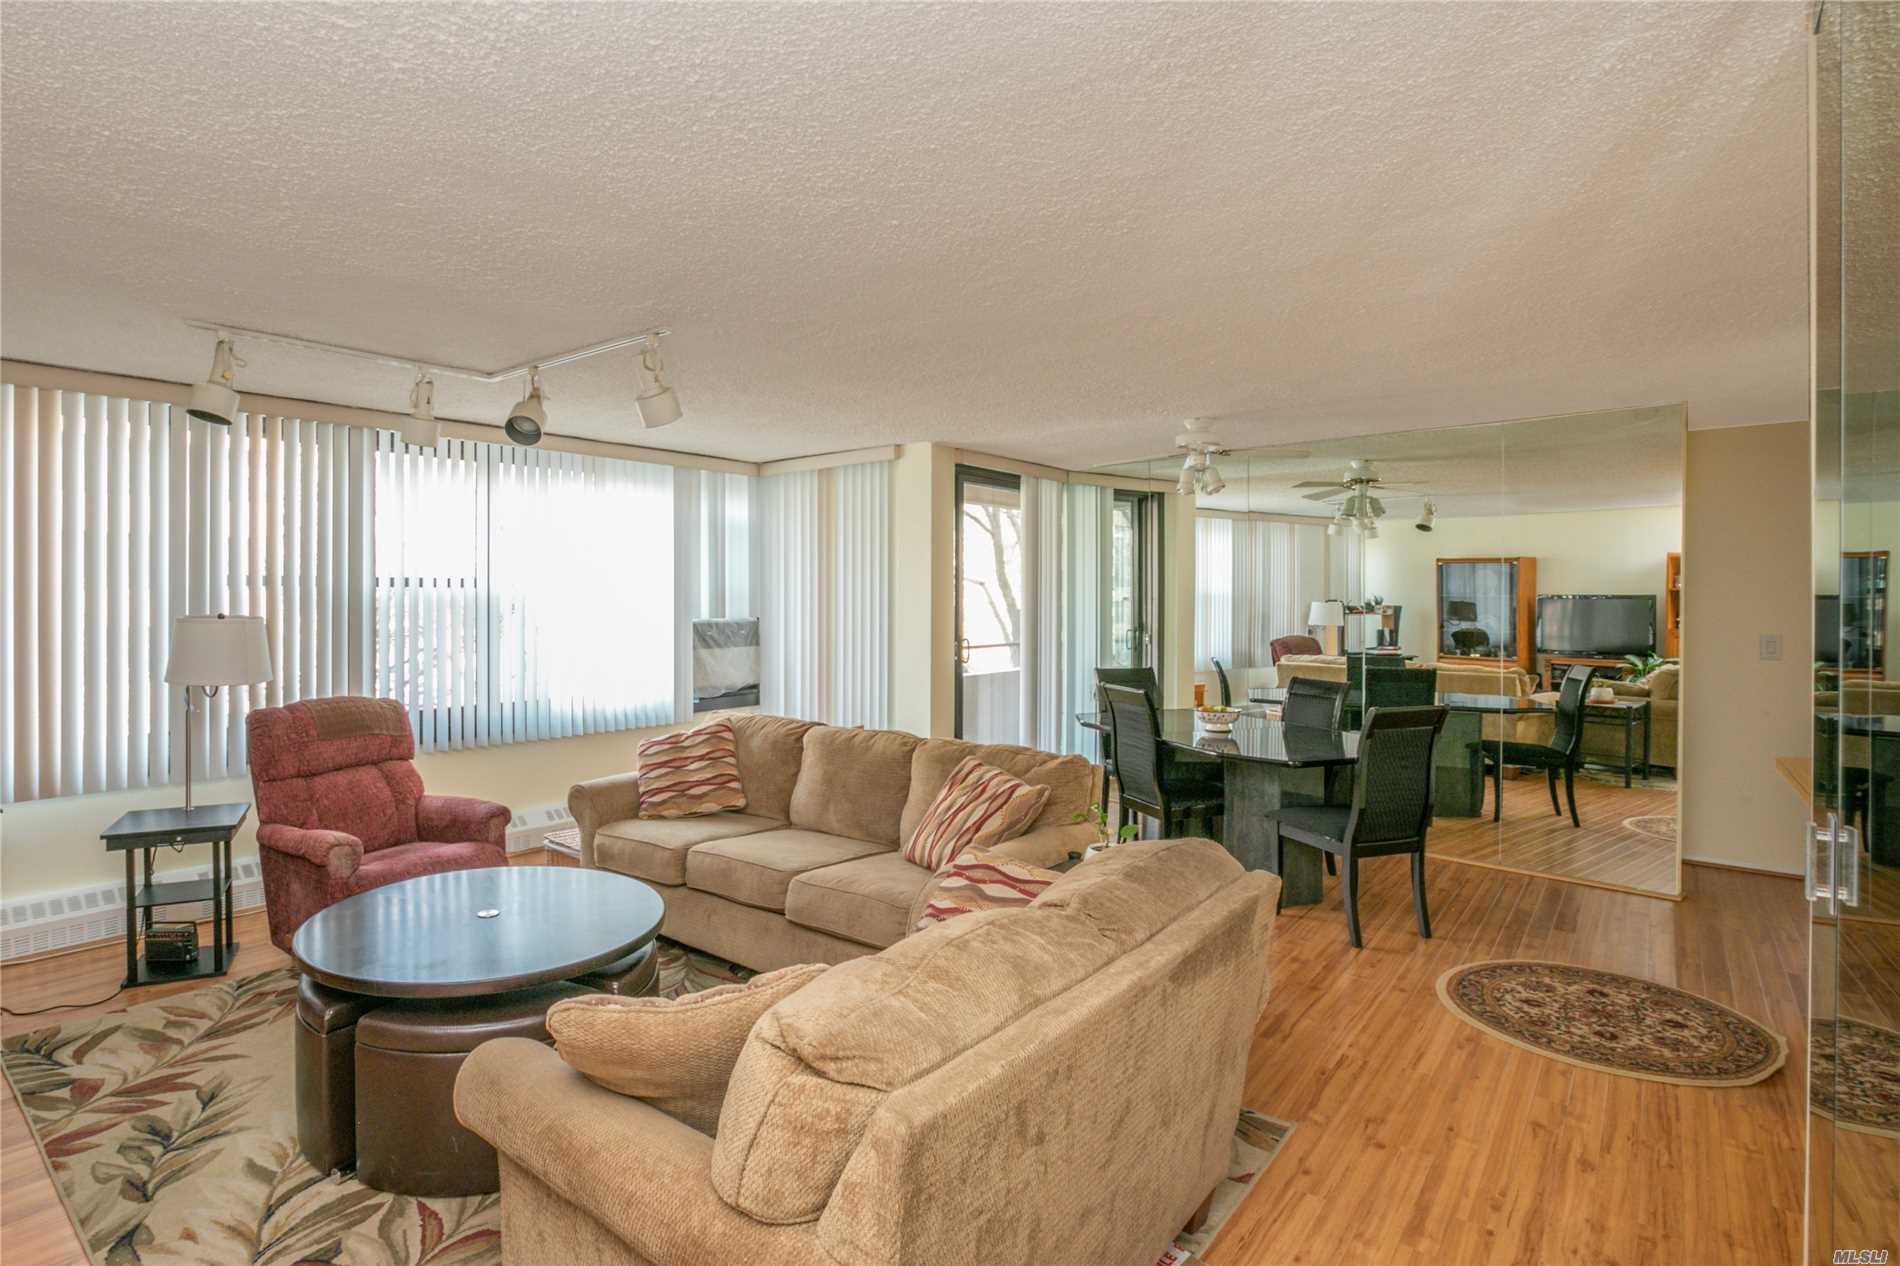 Beechhurst Le Havre 2 bedroom co-op with private terrace and sunset views. Move in ready or design to your personal taste. Prime location and parking space. Close to the Le Havre pool, playground, Local Bus to Flushing Q15 and Express Bus QM2 to Manhattan. Le Havre Development offers 2 Outdoor pools, Tennis, Gym & Cafe.